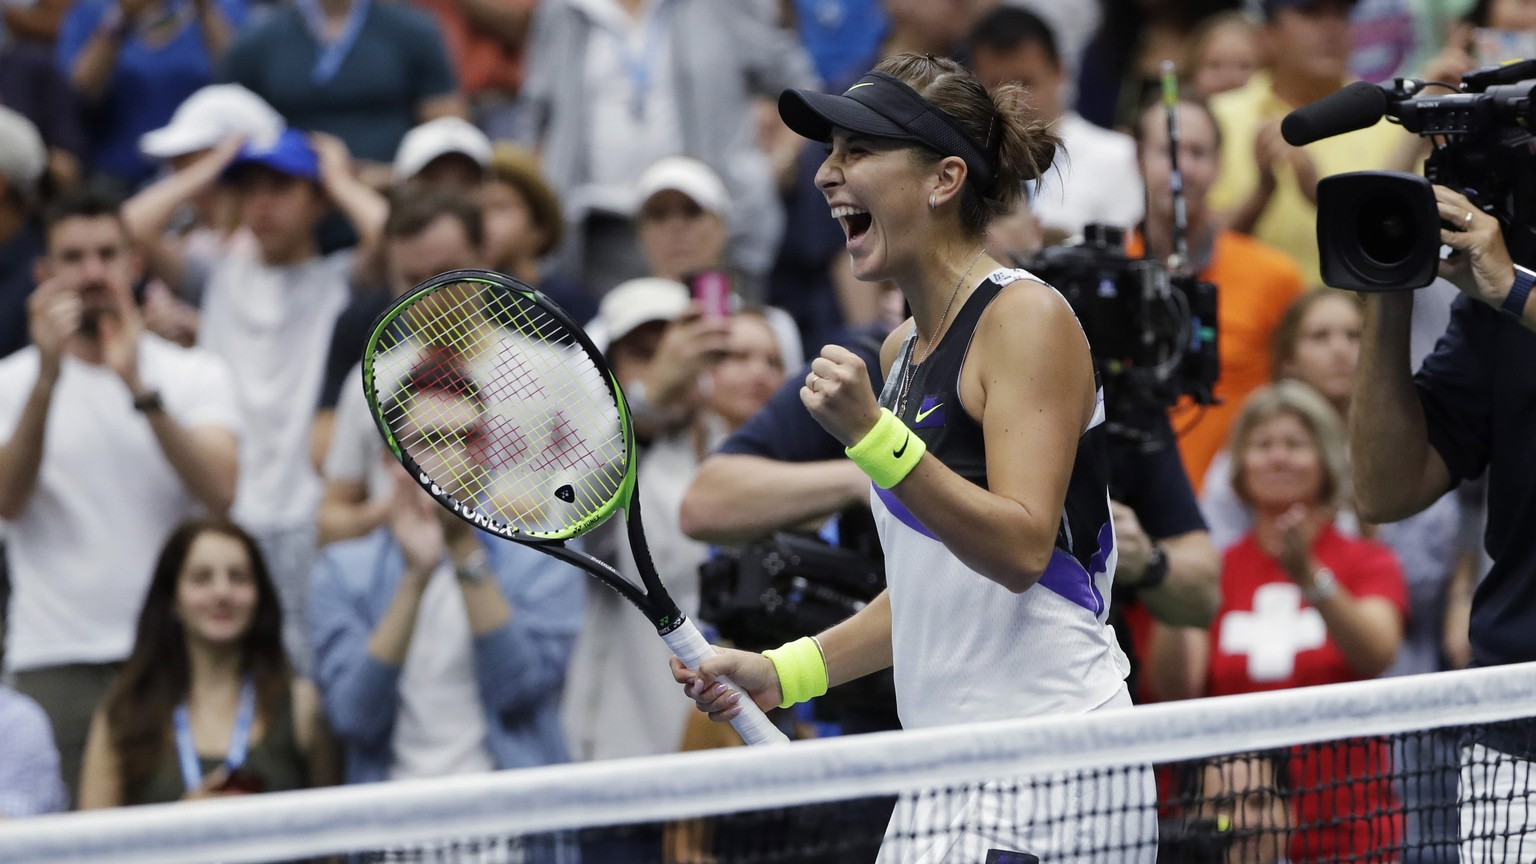 Belinda Bencic, of Switzerland, reacts after defeating Naomi Osaka, of Japan, 7-5, 6-4 during the fourth round of the US Open tennis championships Monday, Sept. 2, 2019, in New York. (AP Photo/Frank Franklin II) Belinda Bencic